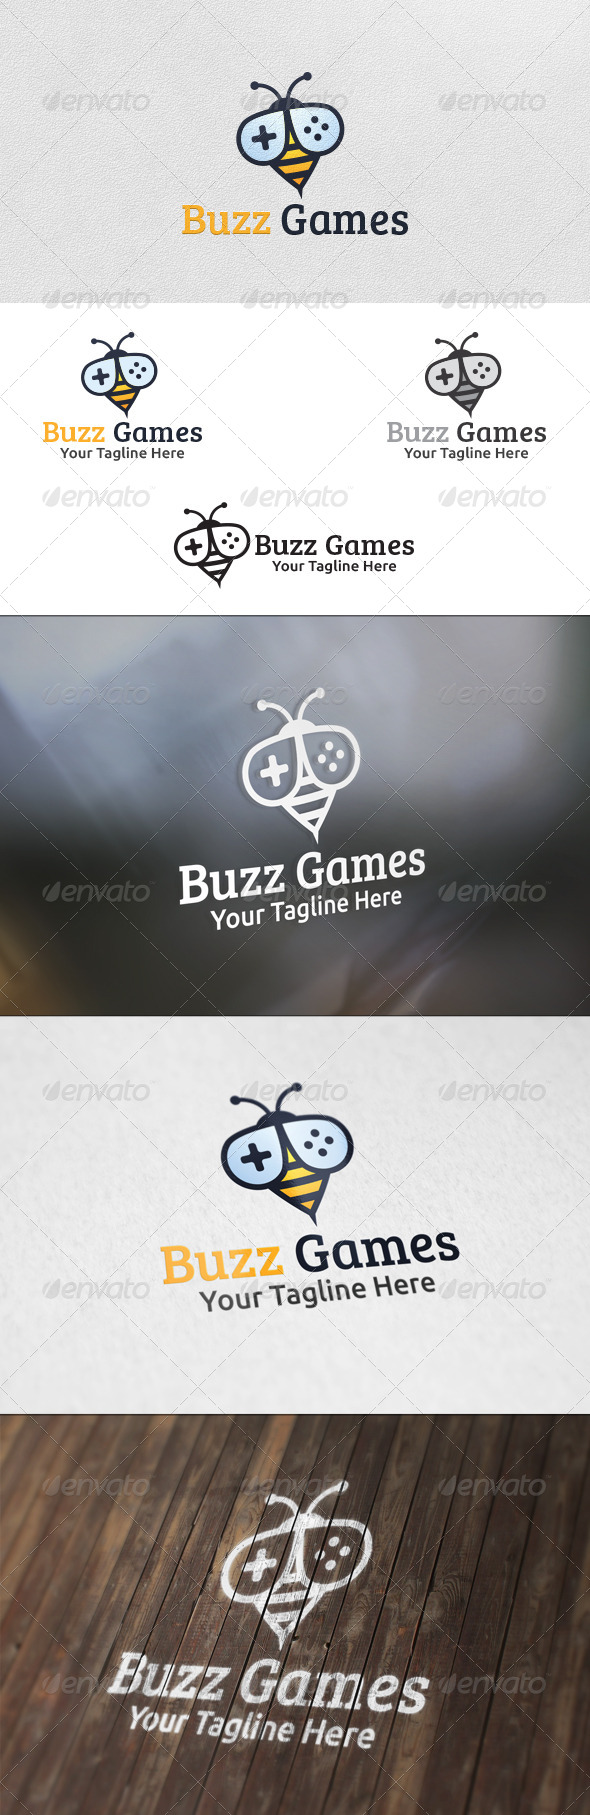 GraphicRiver Buzz Games Logo Template 5889154